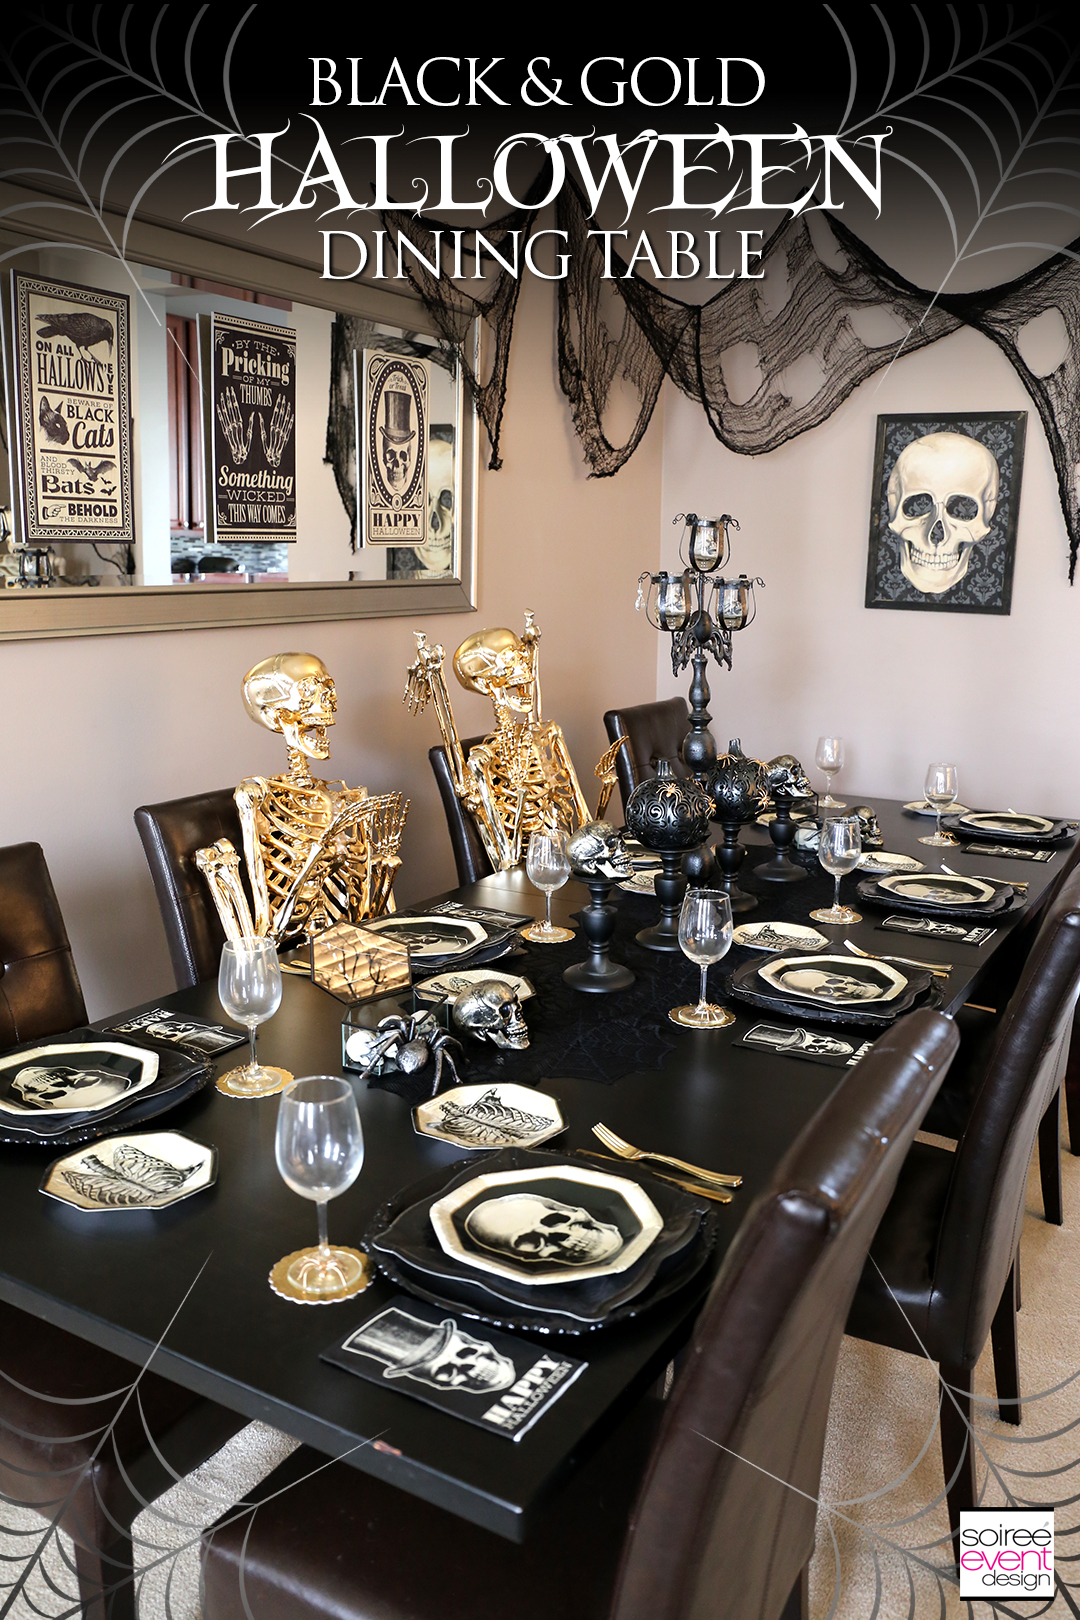 Black and Gold Halloween Decorating Ideas - Dining Table 3